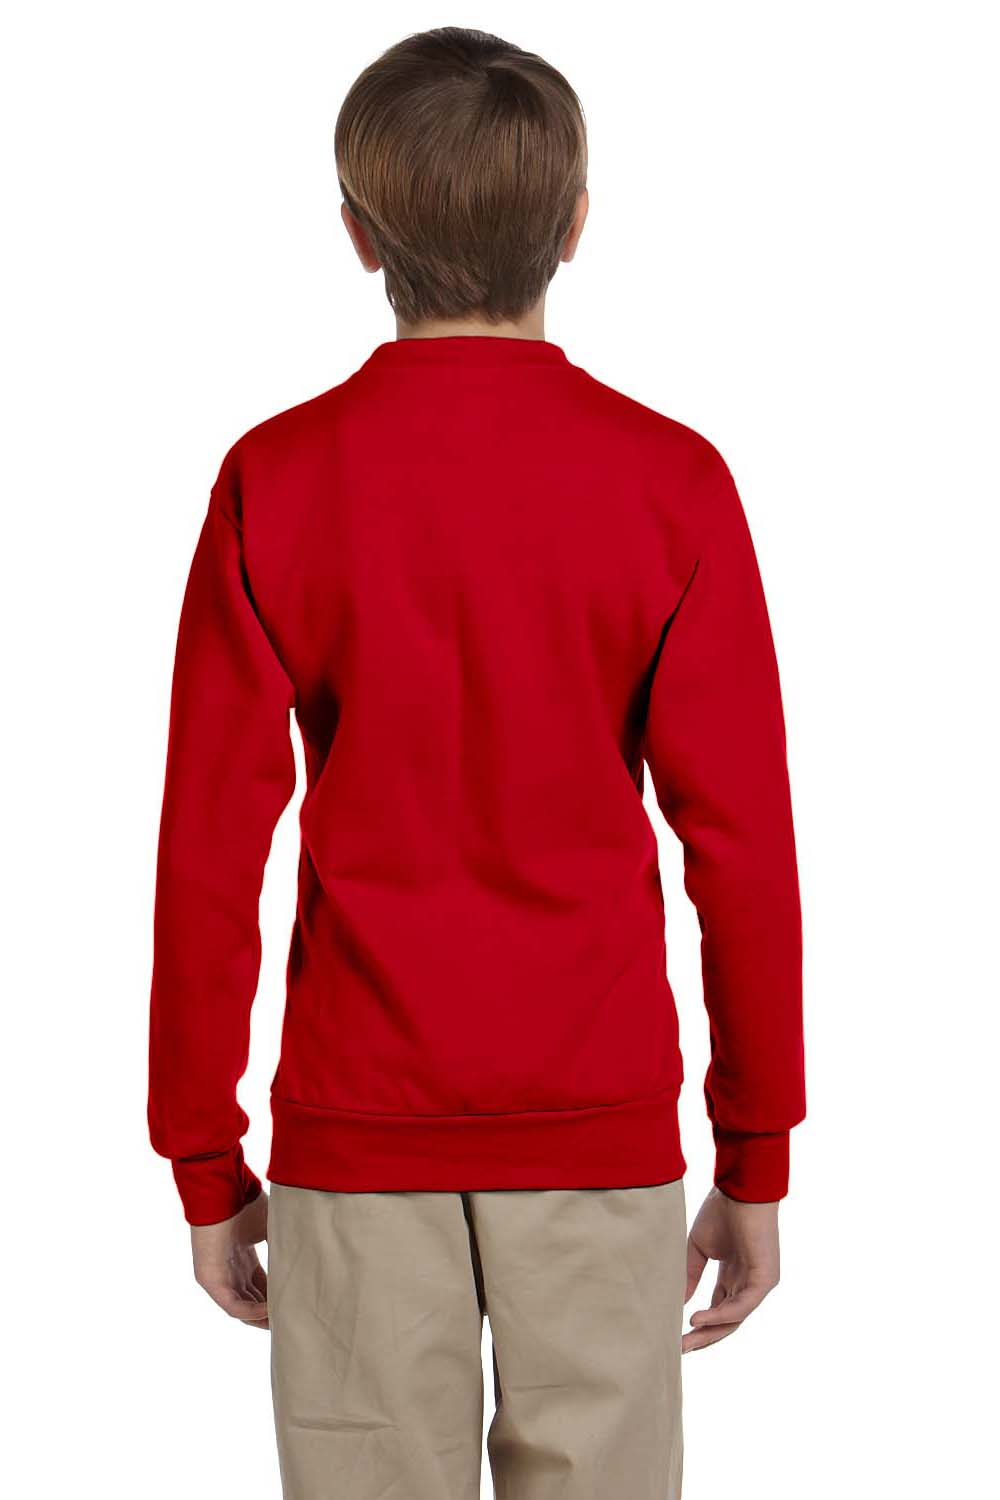 Hanes P360 Youth EcoSmart Print Pro XP Fleece Crewneck Sweatshirt Red Back